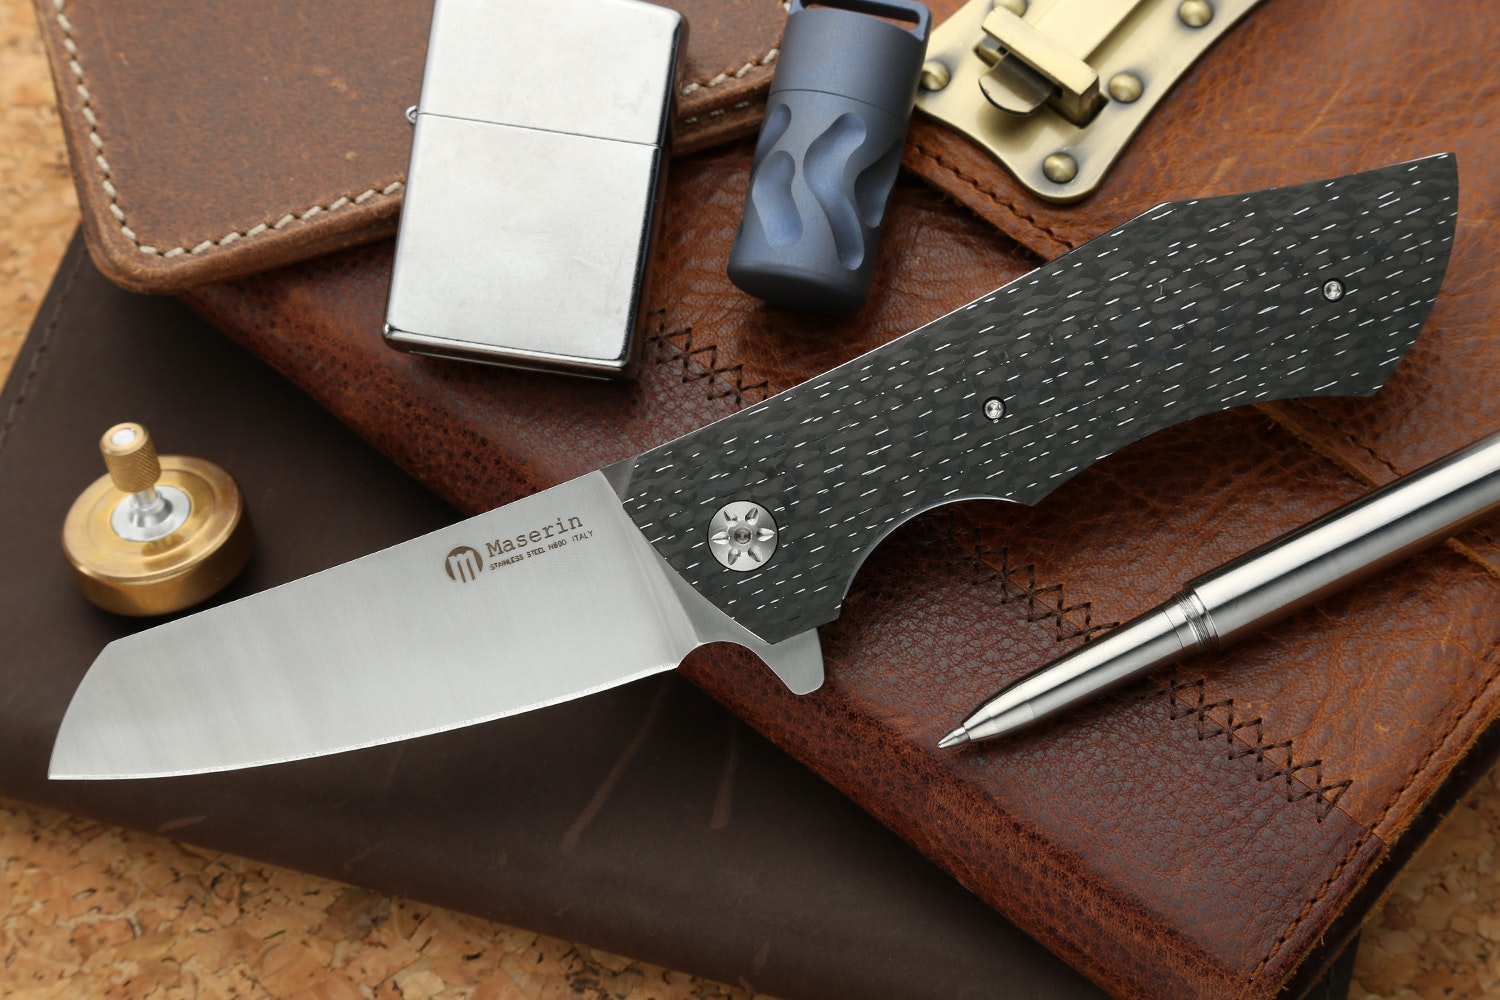 Maserin AM-2 Folding Knife